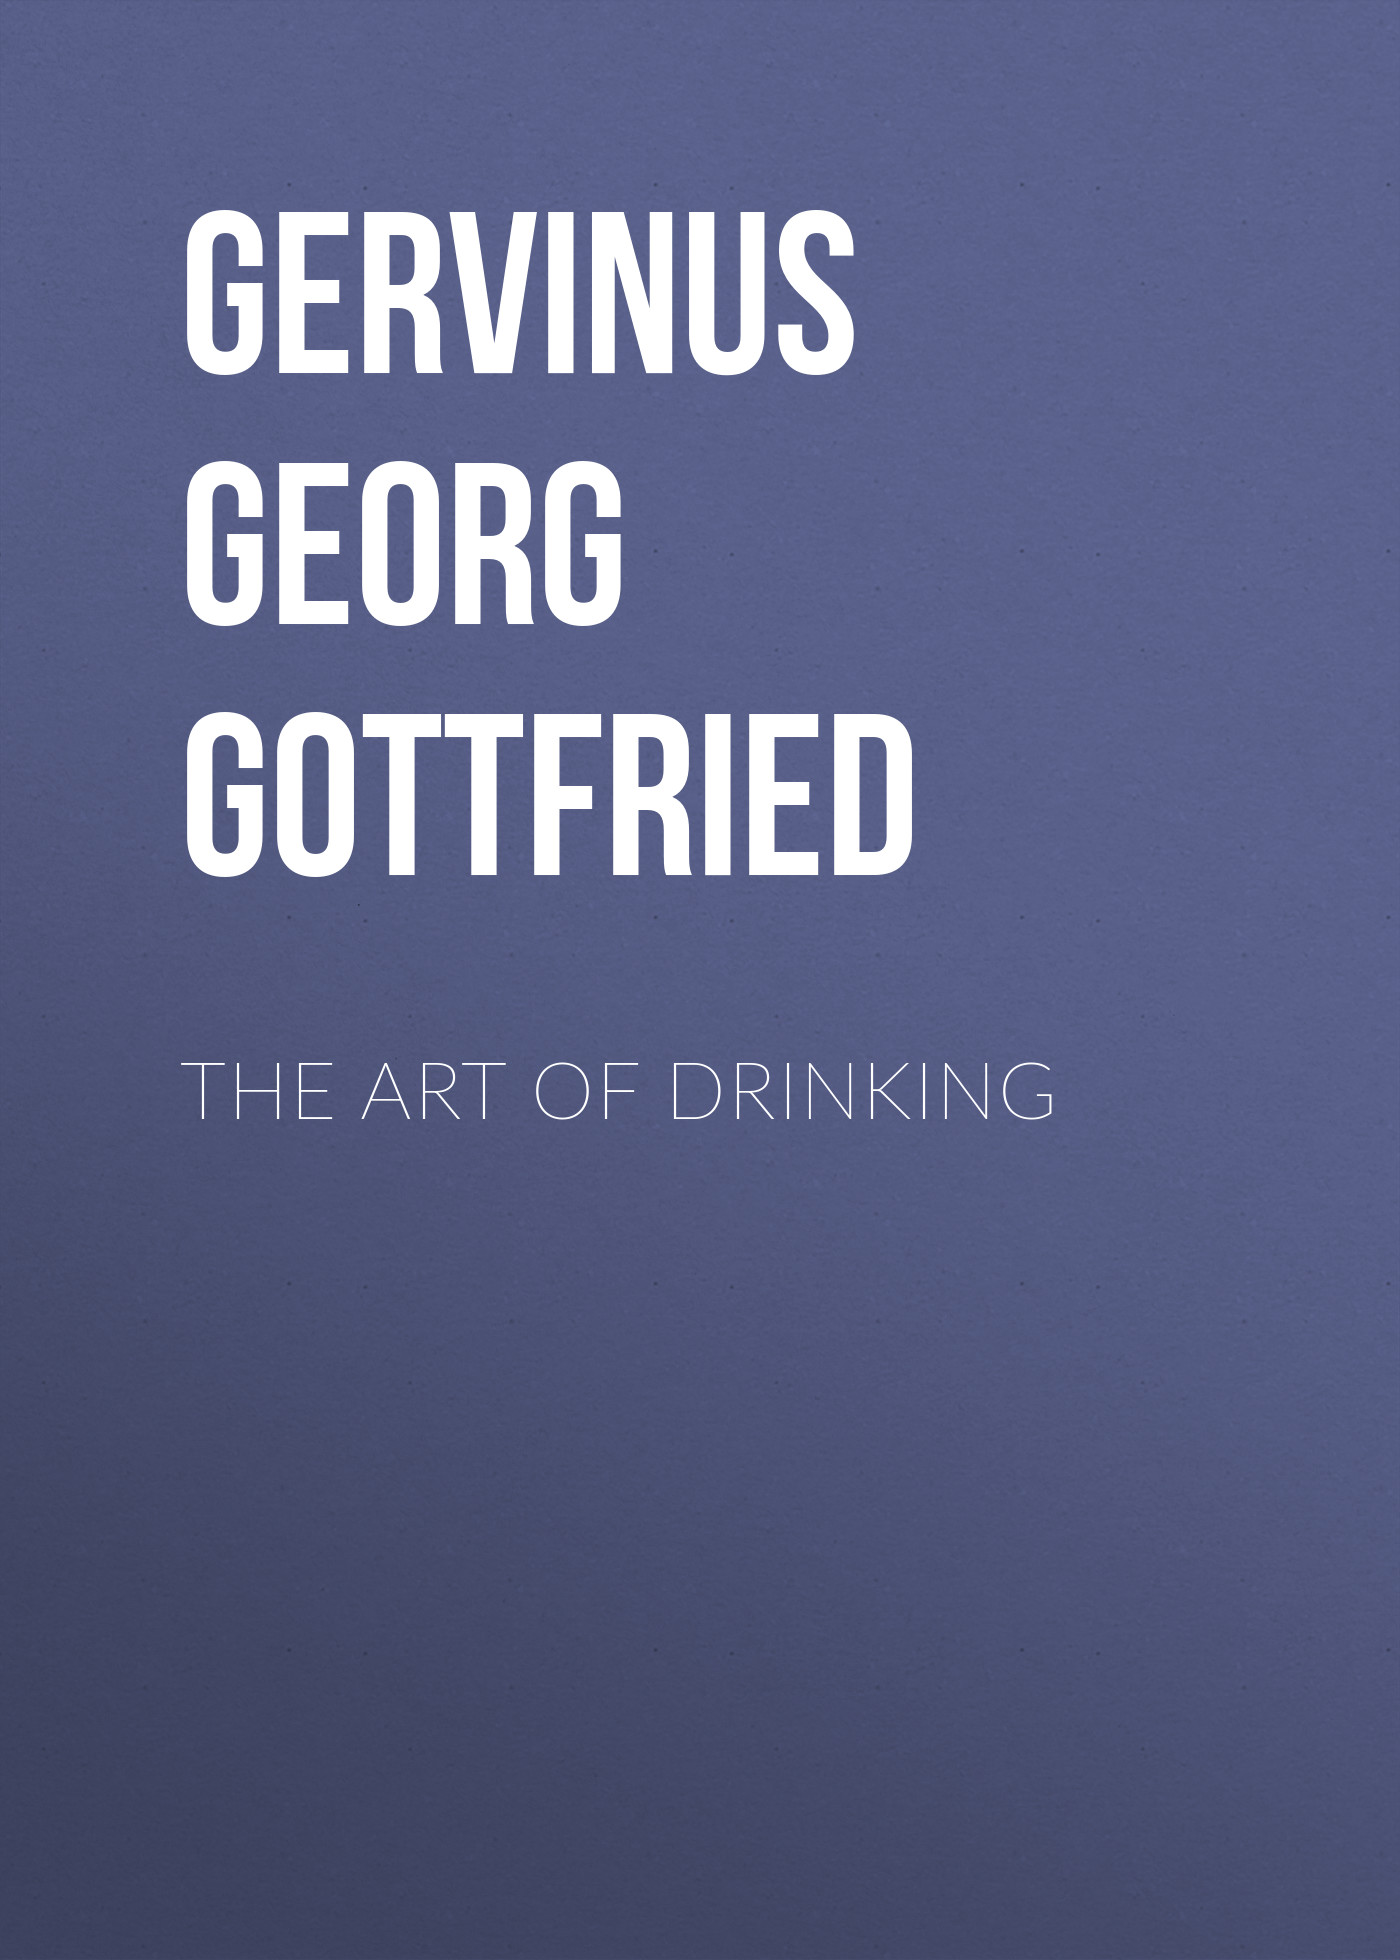 Gervinus Georg Gottfried The Art of Drinking бусы georg art georg art mp002xw18tl6